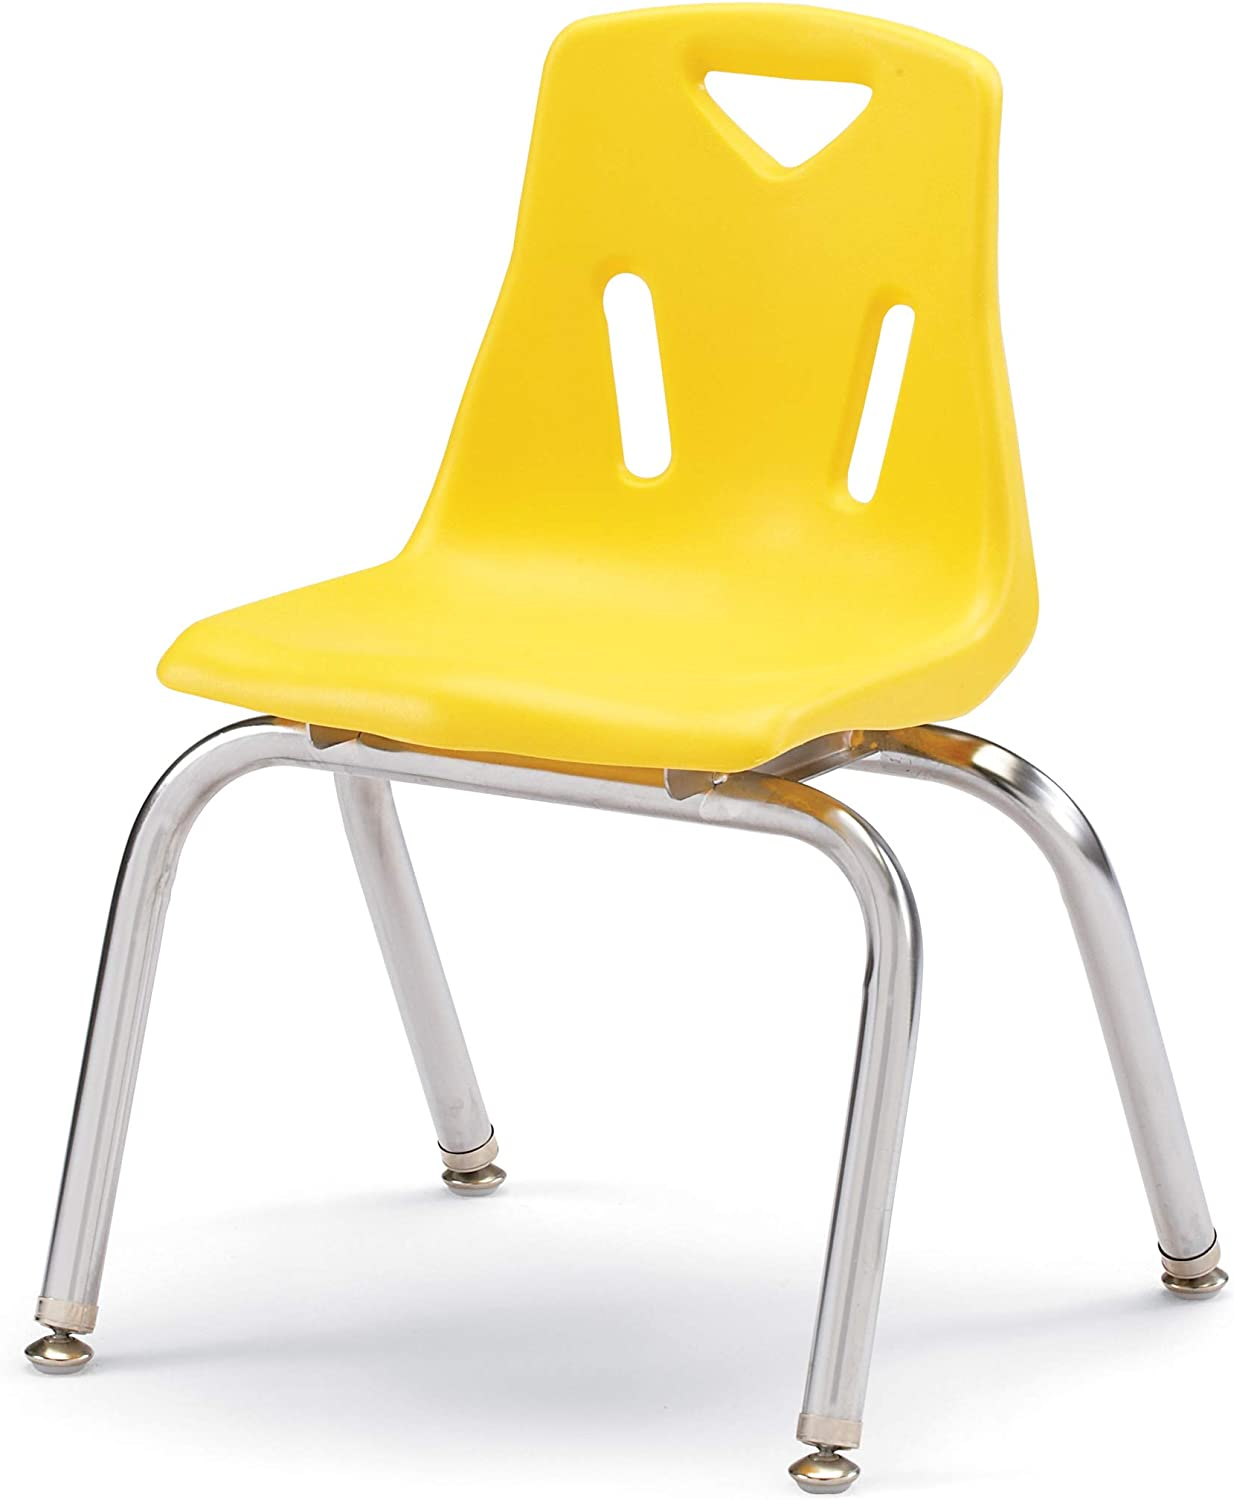 Berries 8144JC1007 Stacking Chair with Chrome-Plated Legs, 14  Height, Yellow